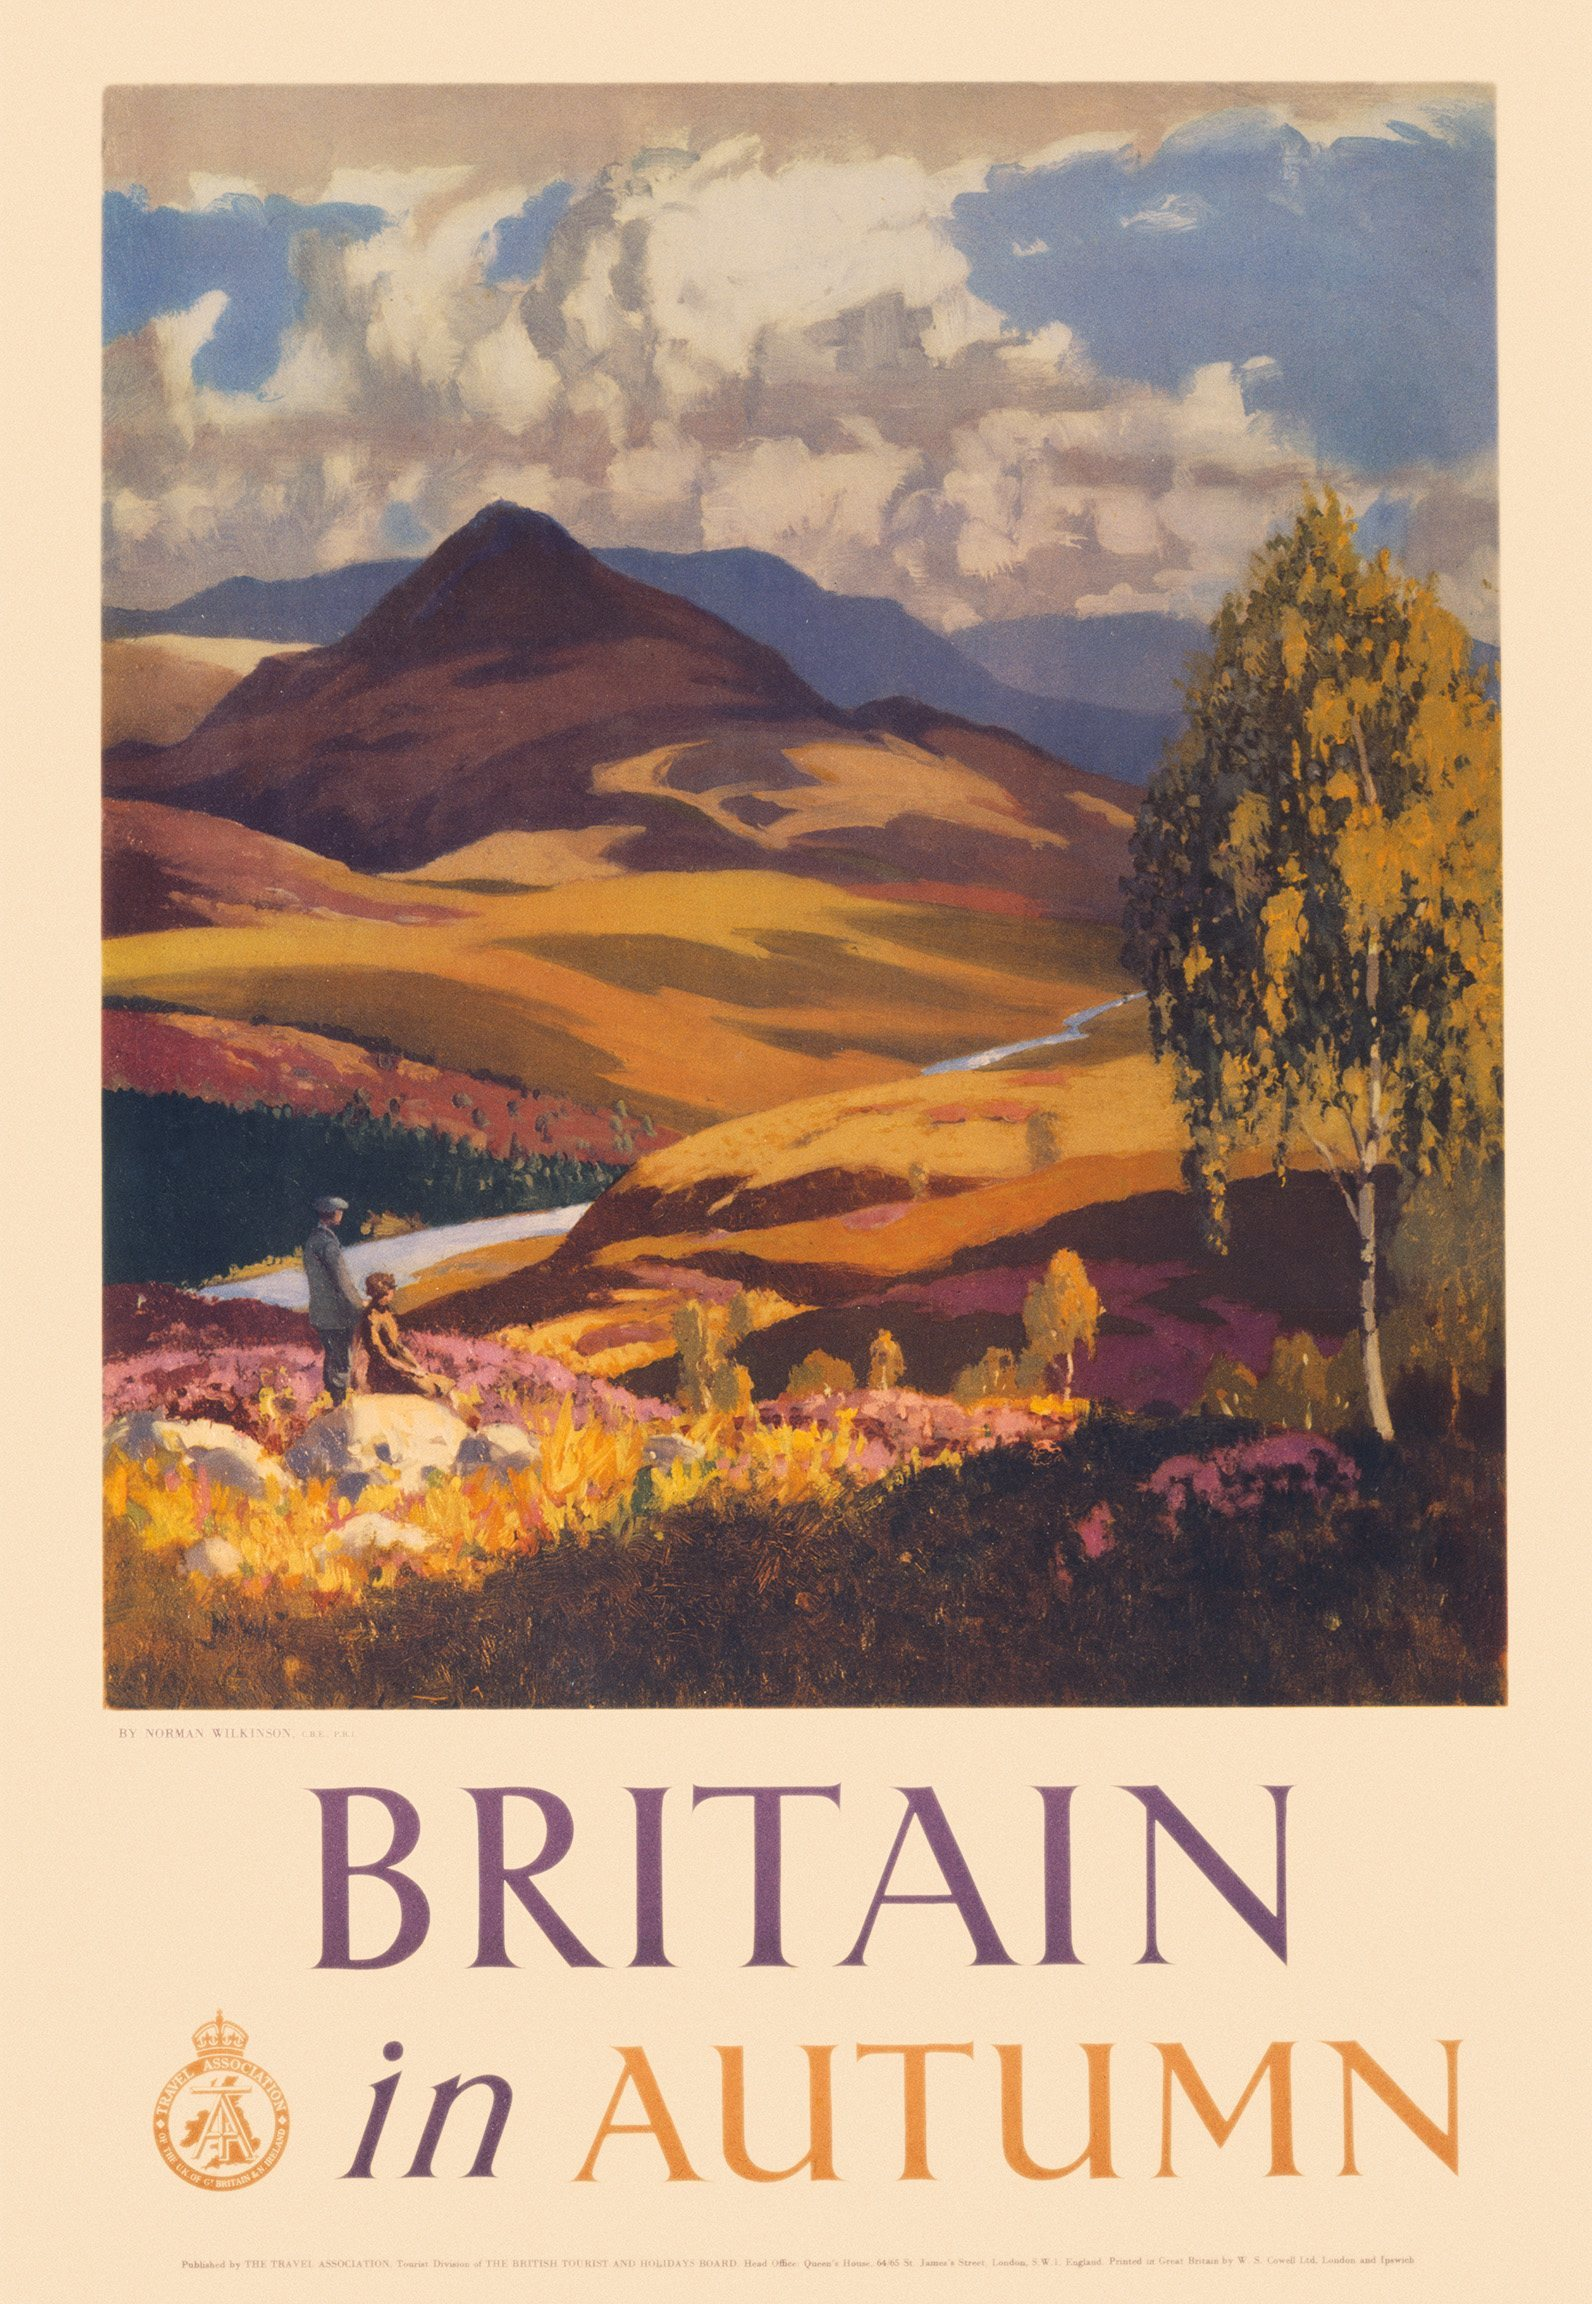 British Tourist and Holidays Board poster. Artwork by Norman Wilkinson.